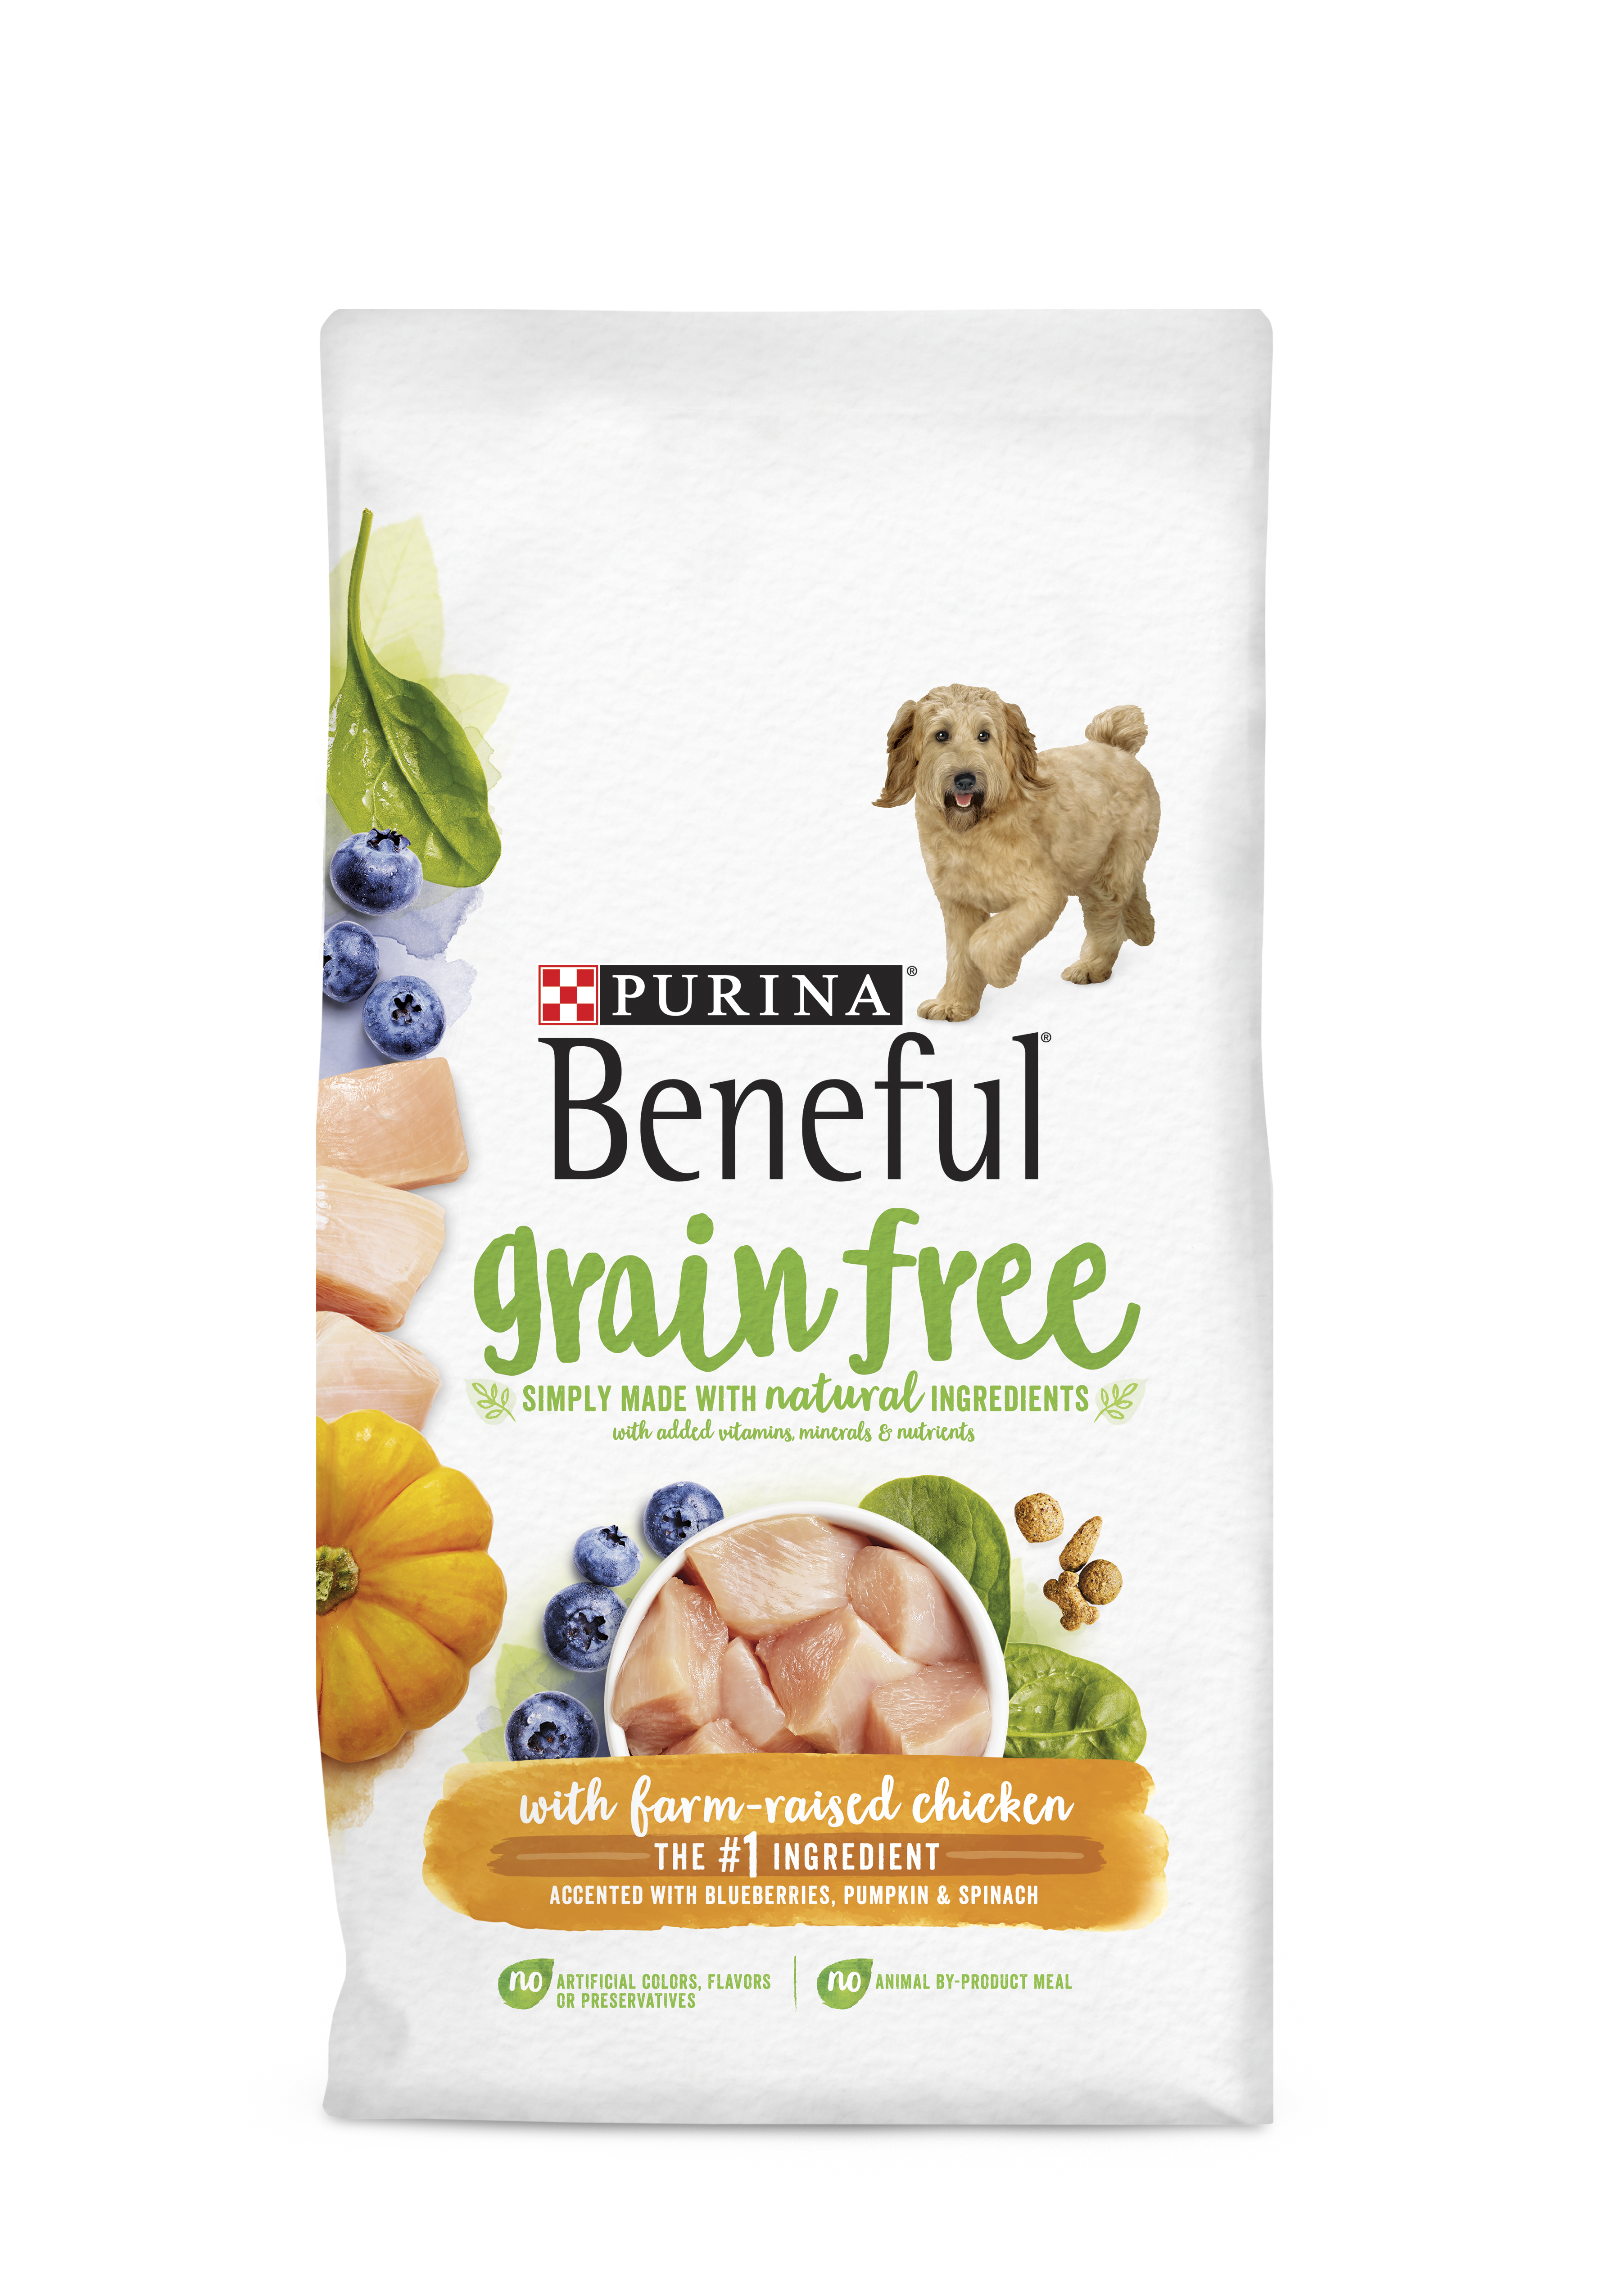 Beneful Grain Free Dry Dog Food with Chicken | Purina